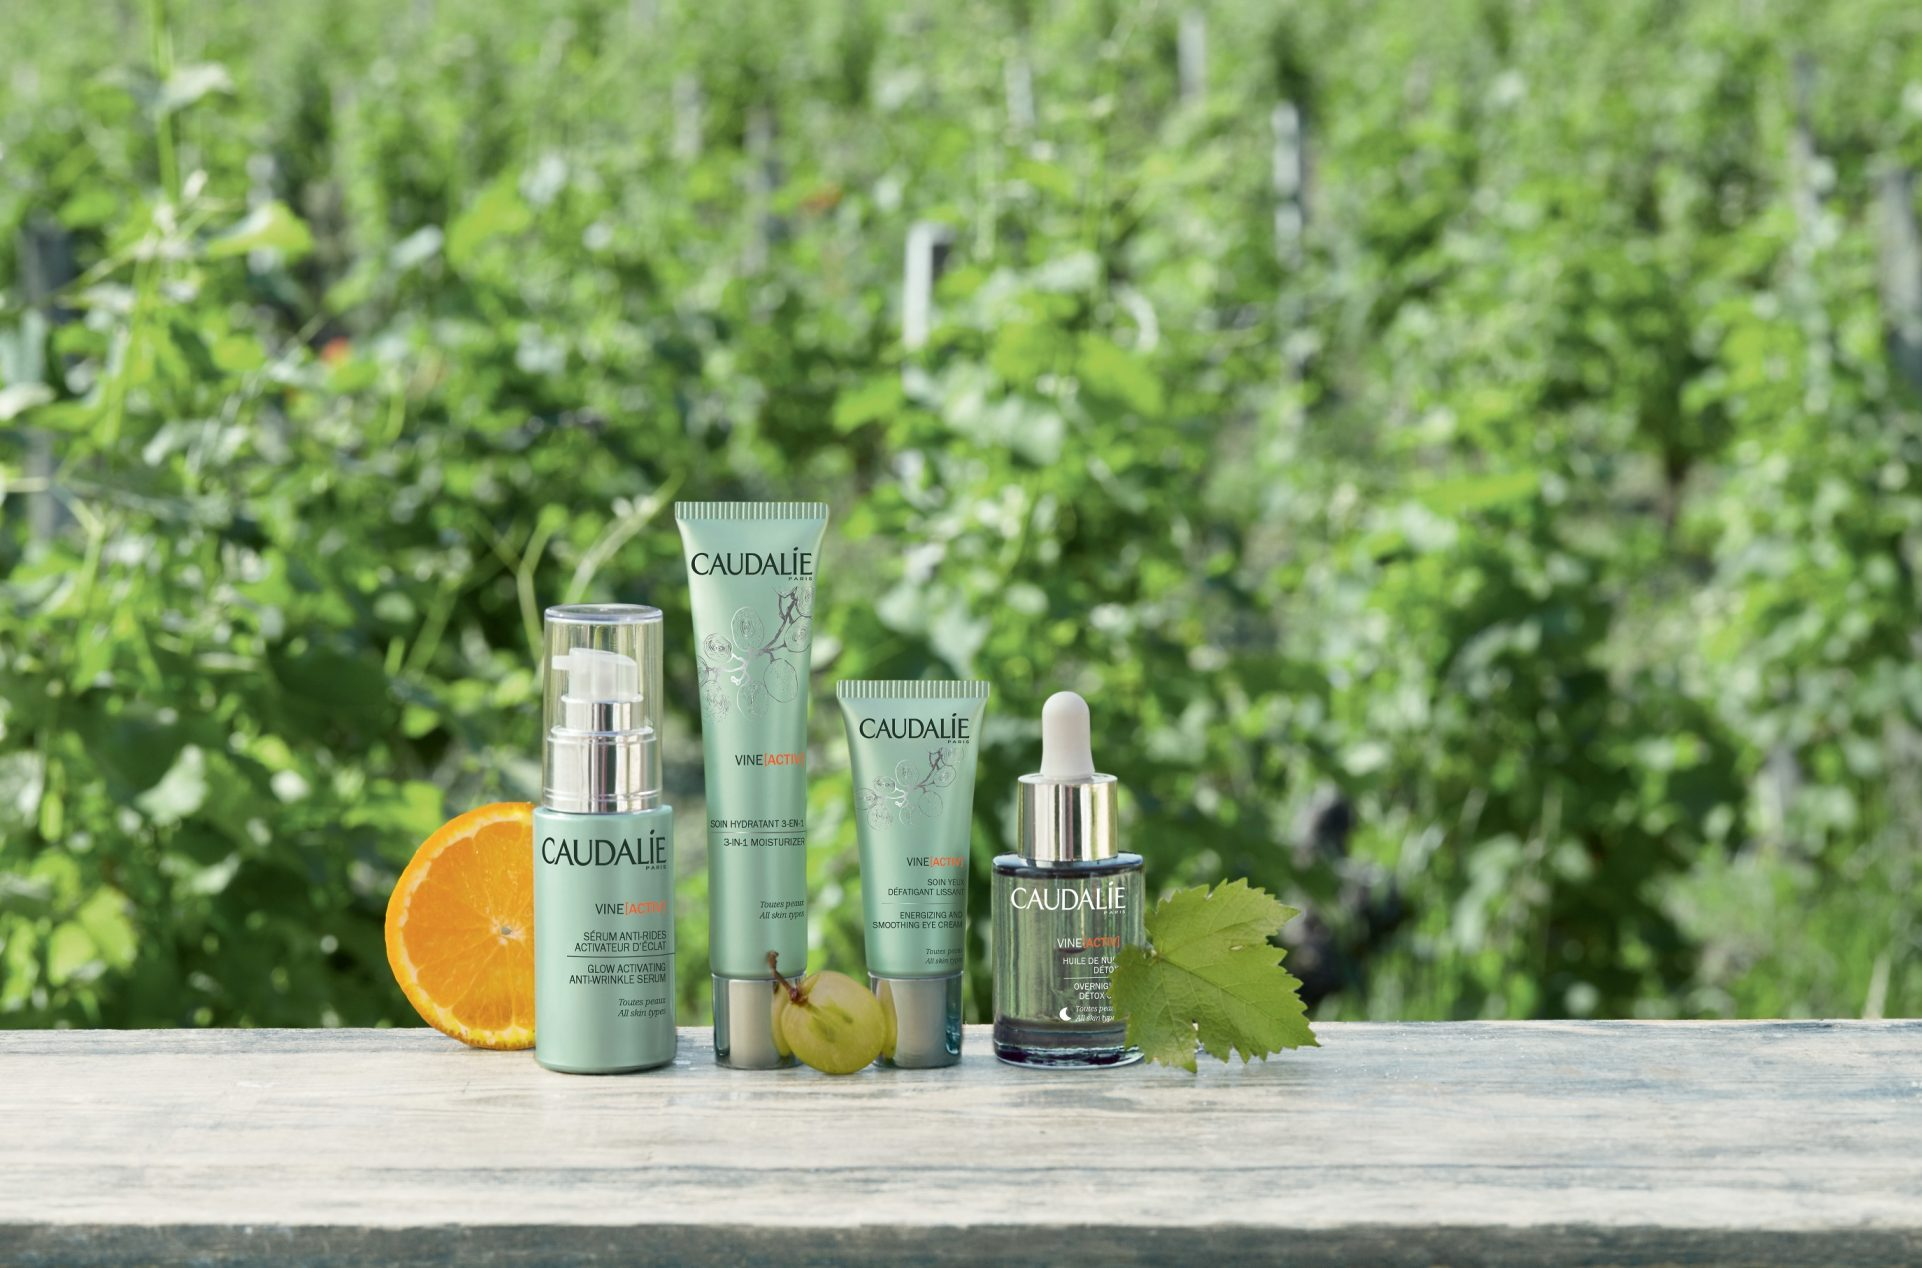 Caudalie Vine Active range at Frontlinestyle Hair and Beauty